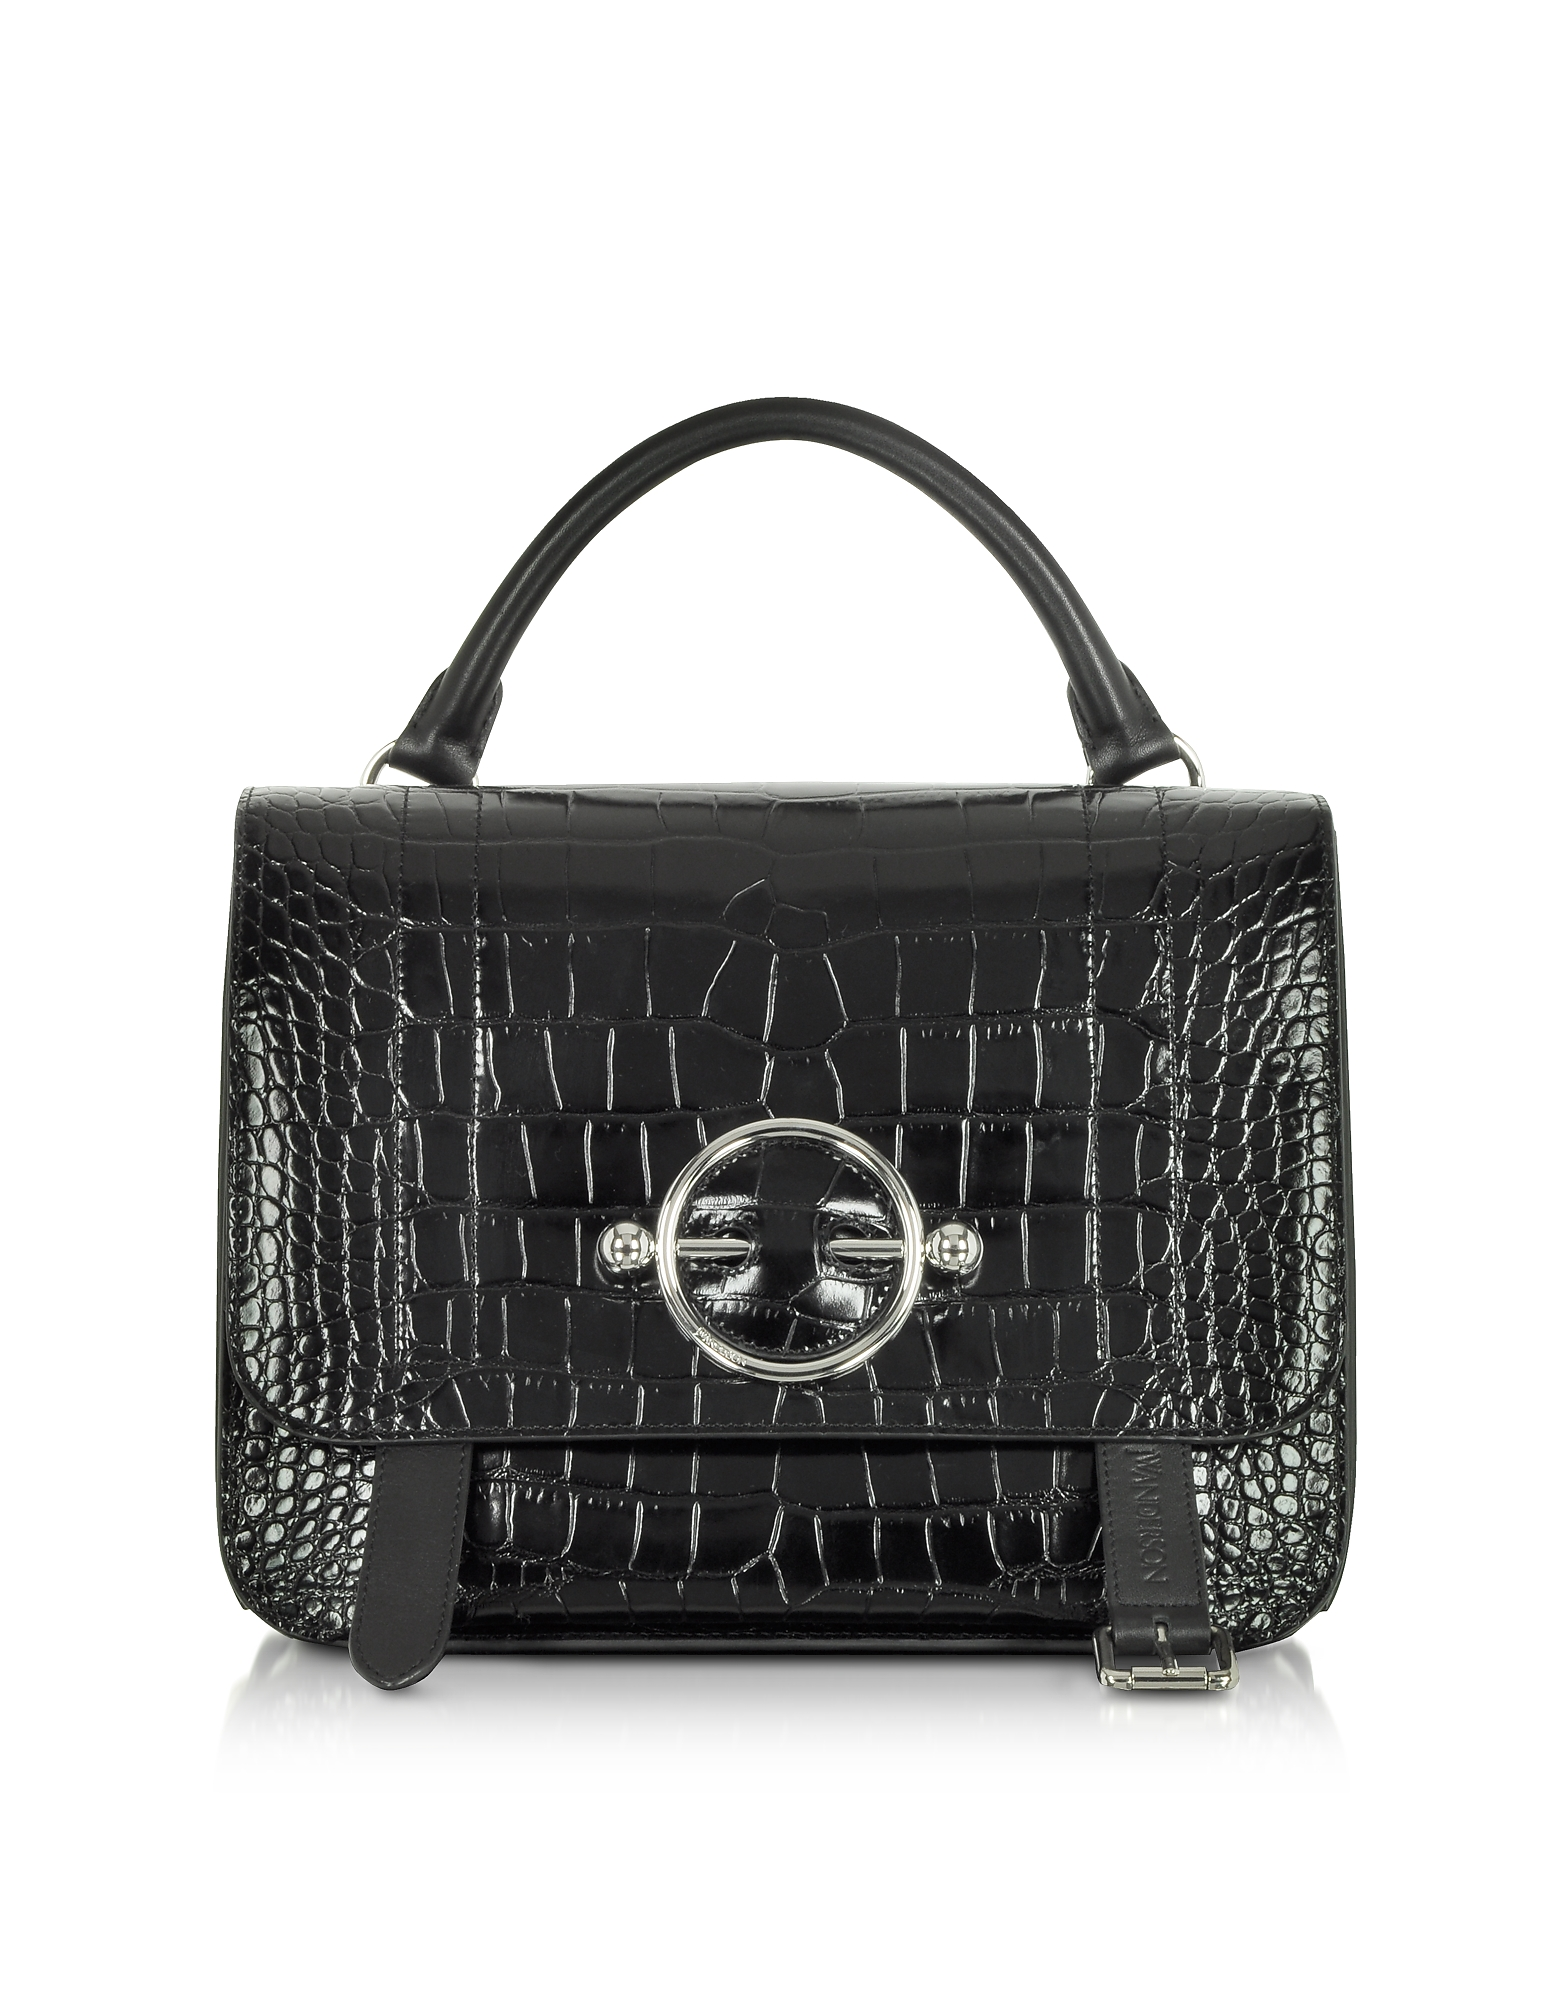 Image of JW Anderson Designer Handbags, Black Croco Embossed Leather Disc Satchel Bag